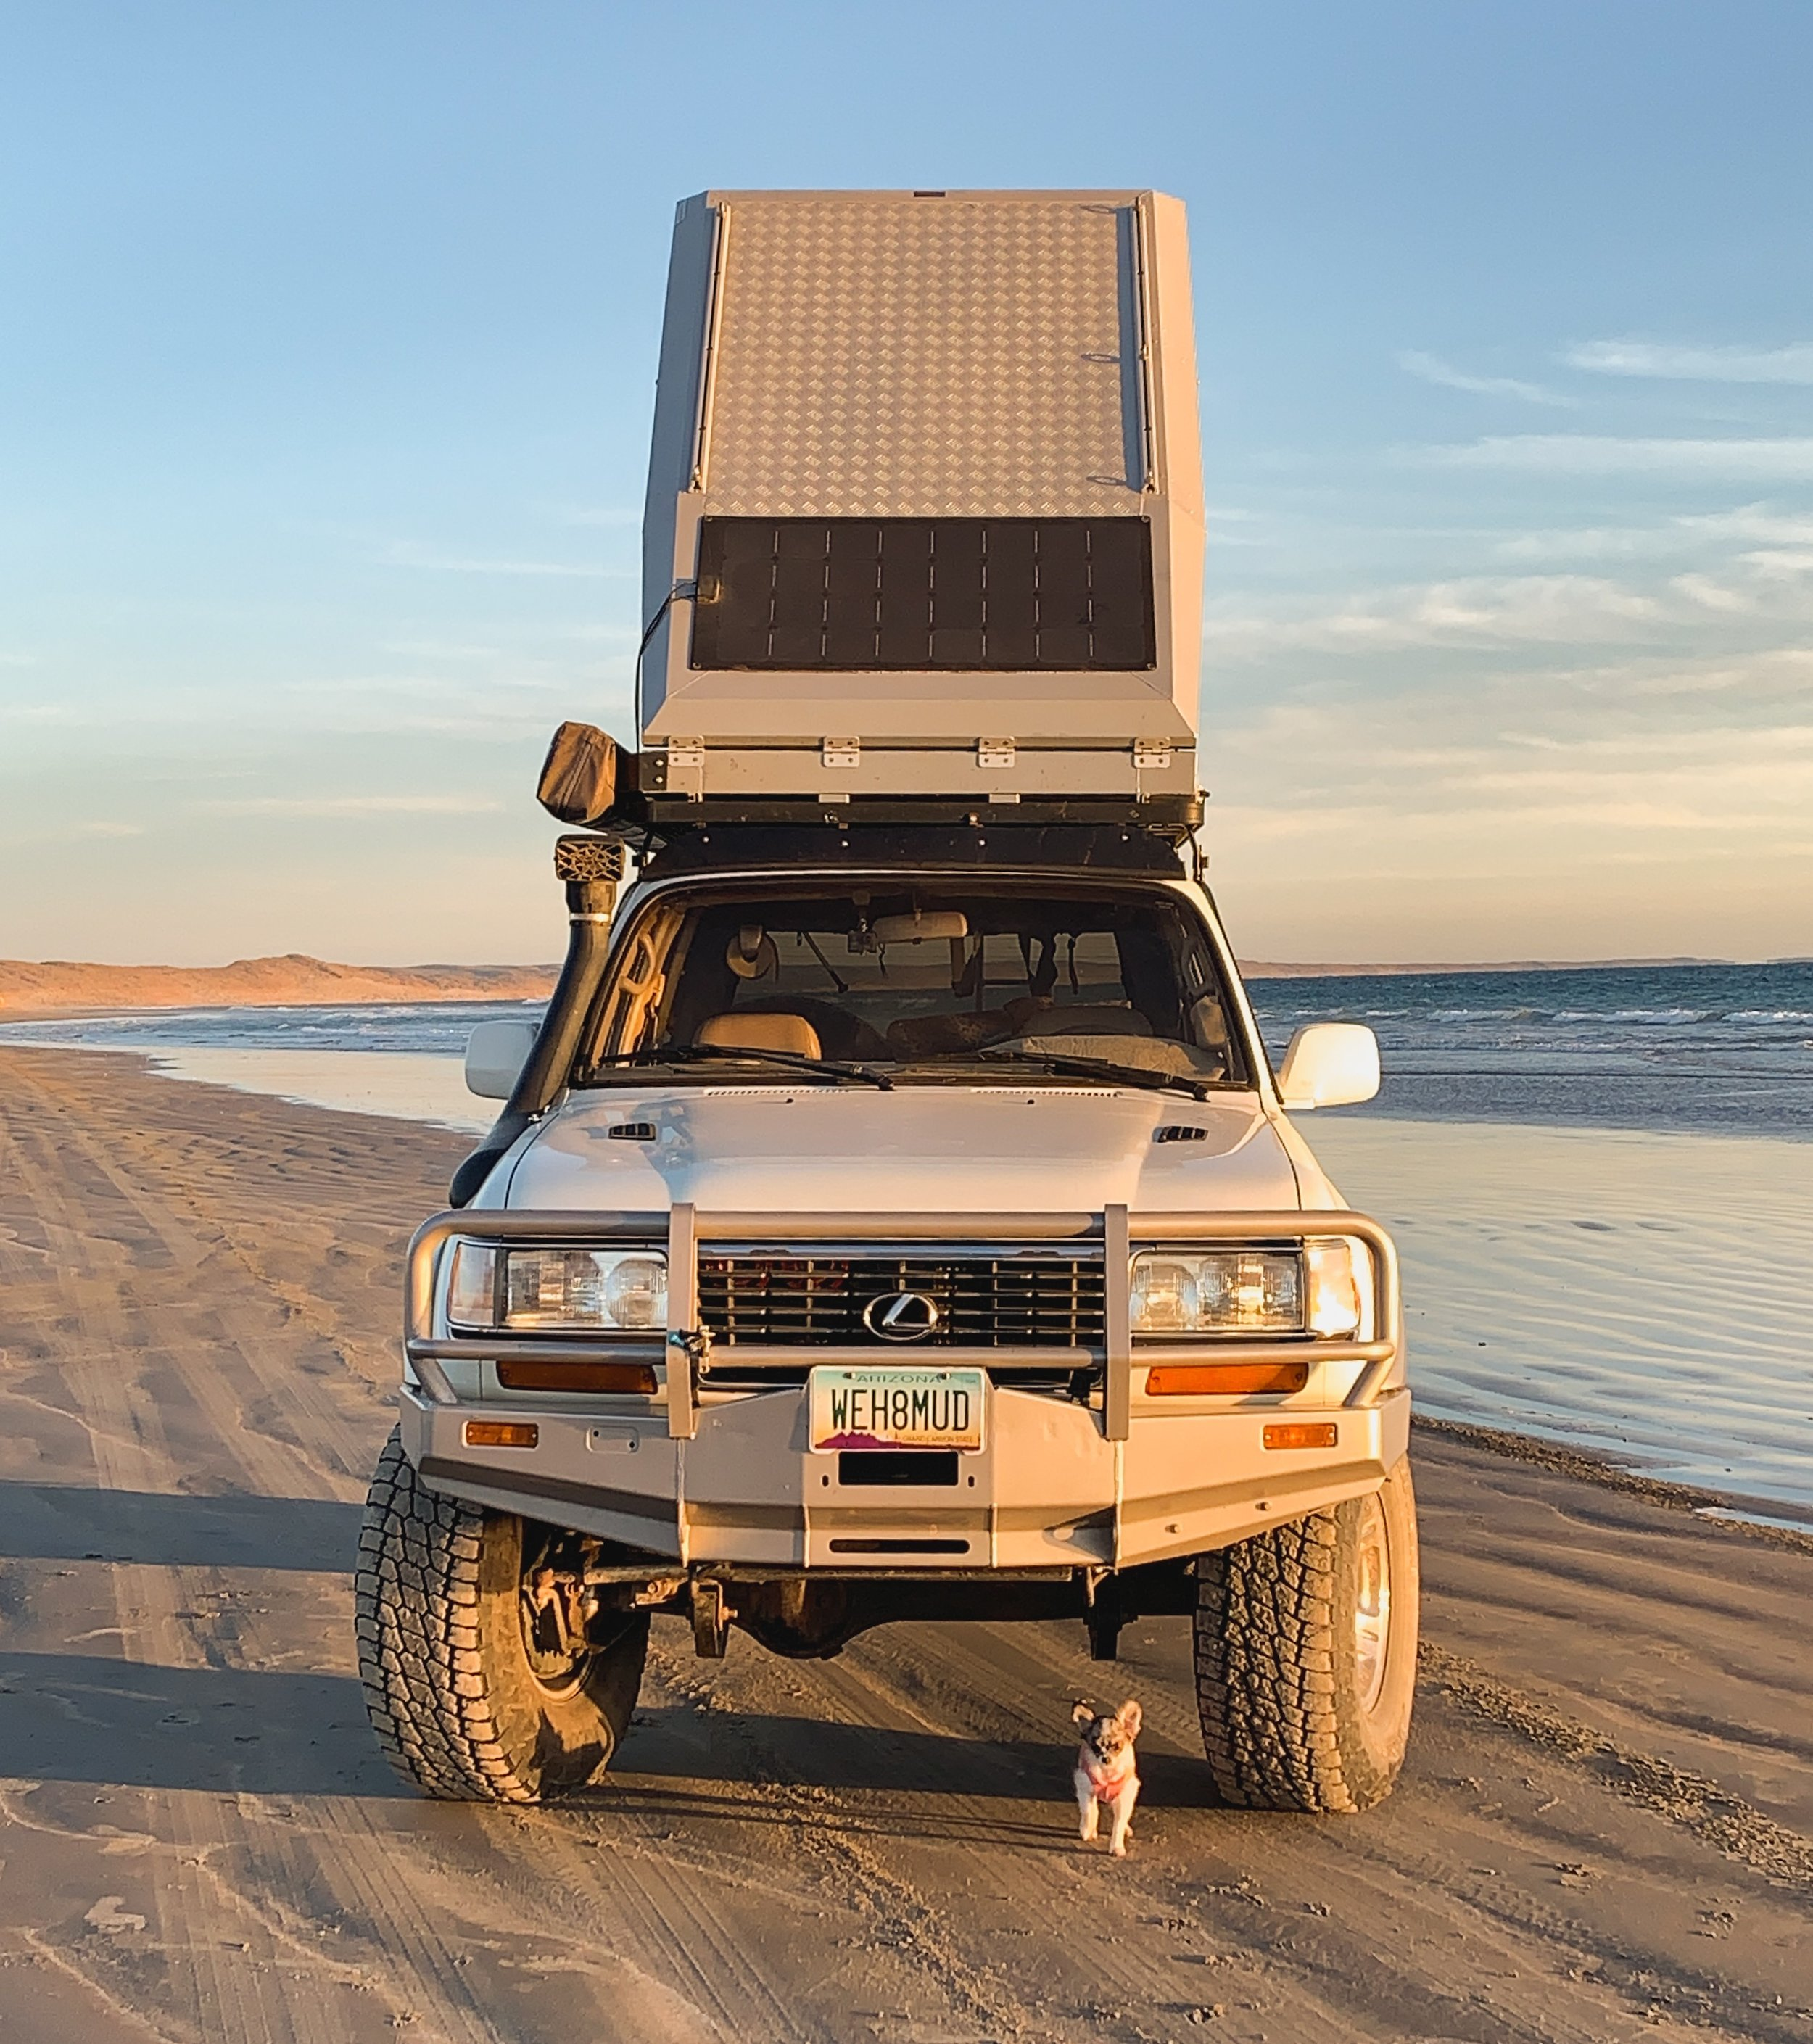 This 1997 LX450 has been supercharged, built for, and driven, over 80k miles of extended travel through North, Central & Latin America. Although Monica & Jeff have driven more extensively in other expedition vehicles, their trusty Toyota has remained the favorite for both longer trips into Mexico or local Arizona 4x4 trails near their home. Let them know if you want do a trail together! Build list can be found at http://www.overlandtheworld.com/lx450-1997-supercharged-w-locker/